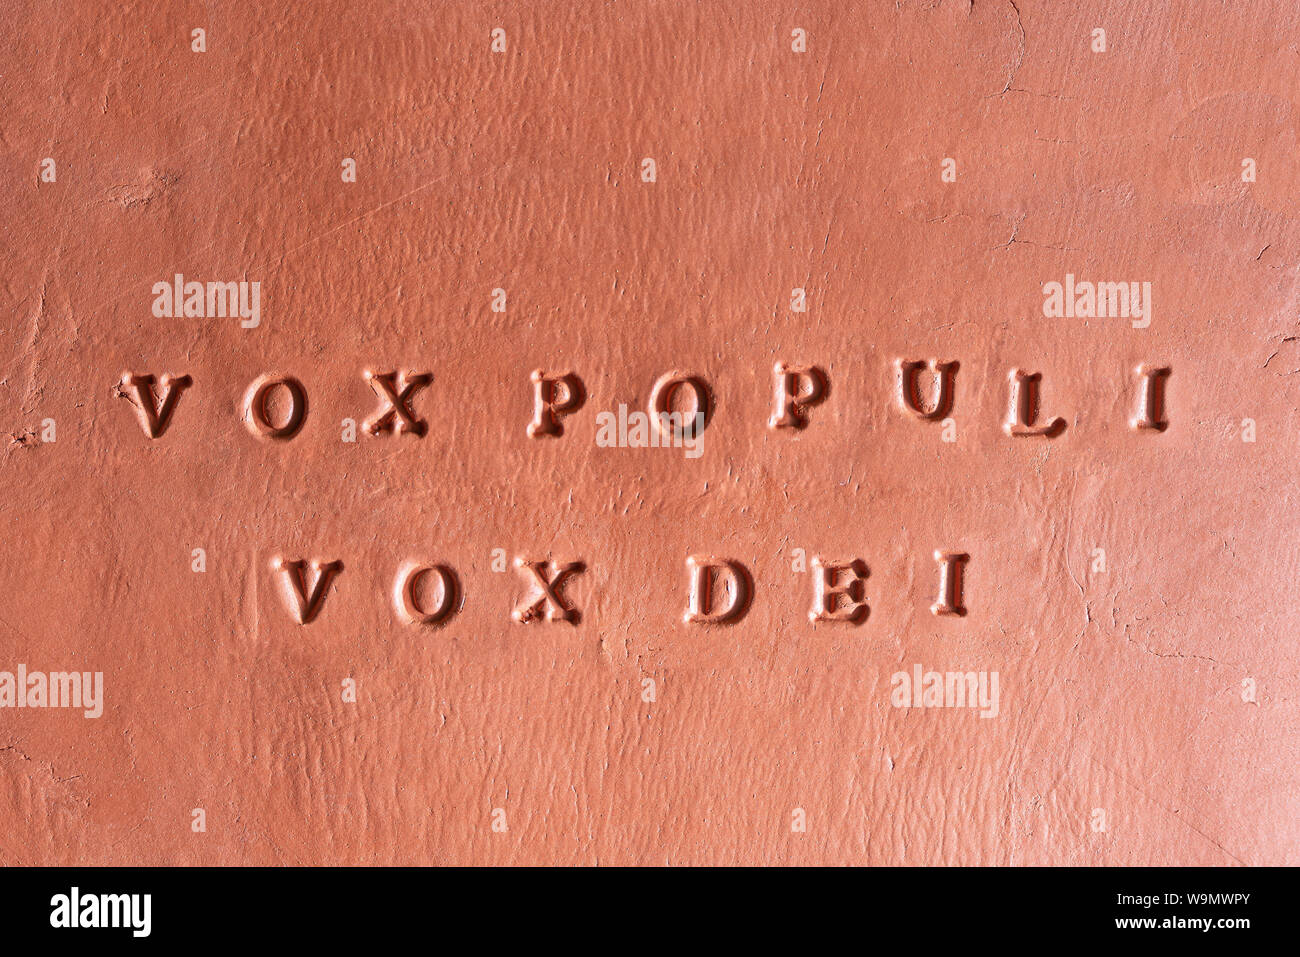 Vox High Resolution Stock Photography And Images Alamy